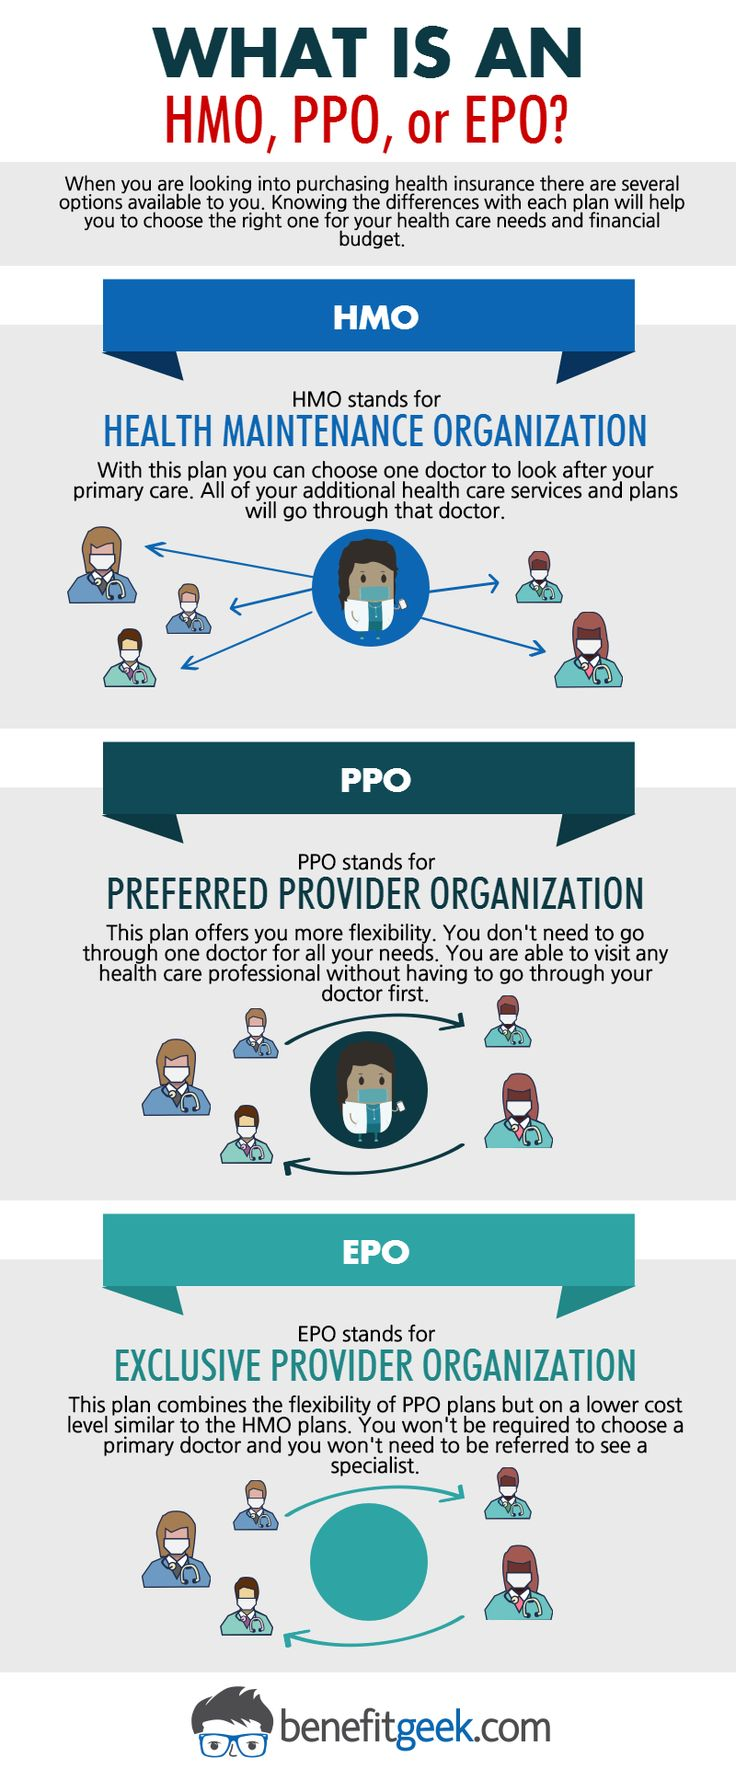 What is an HMO, PPO, or EPO? When you are looking into purchasing health insurance there are several options available to you. Knowing the differences with each plan will help you choose the right one for your health care needs and financial budget.